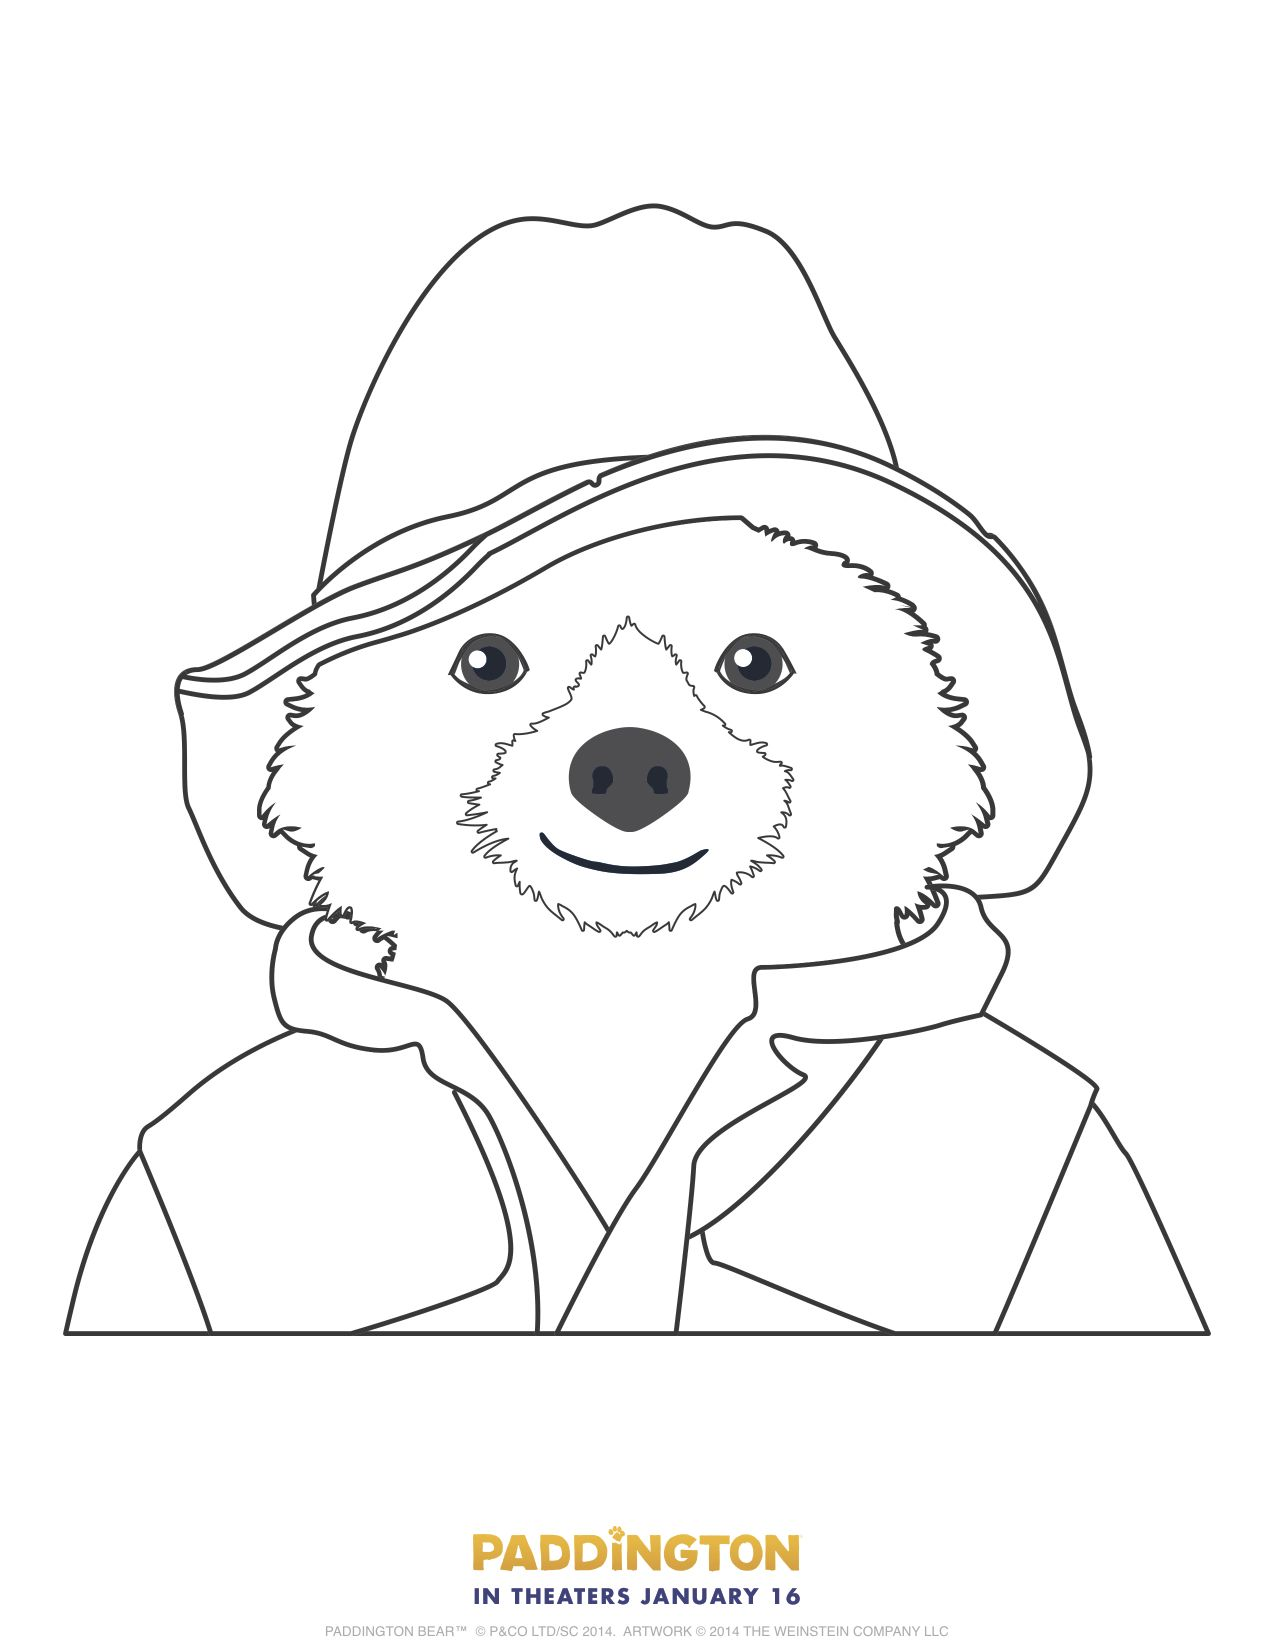 PADDINGTON arrives in theaters